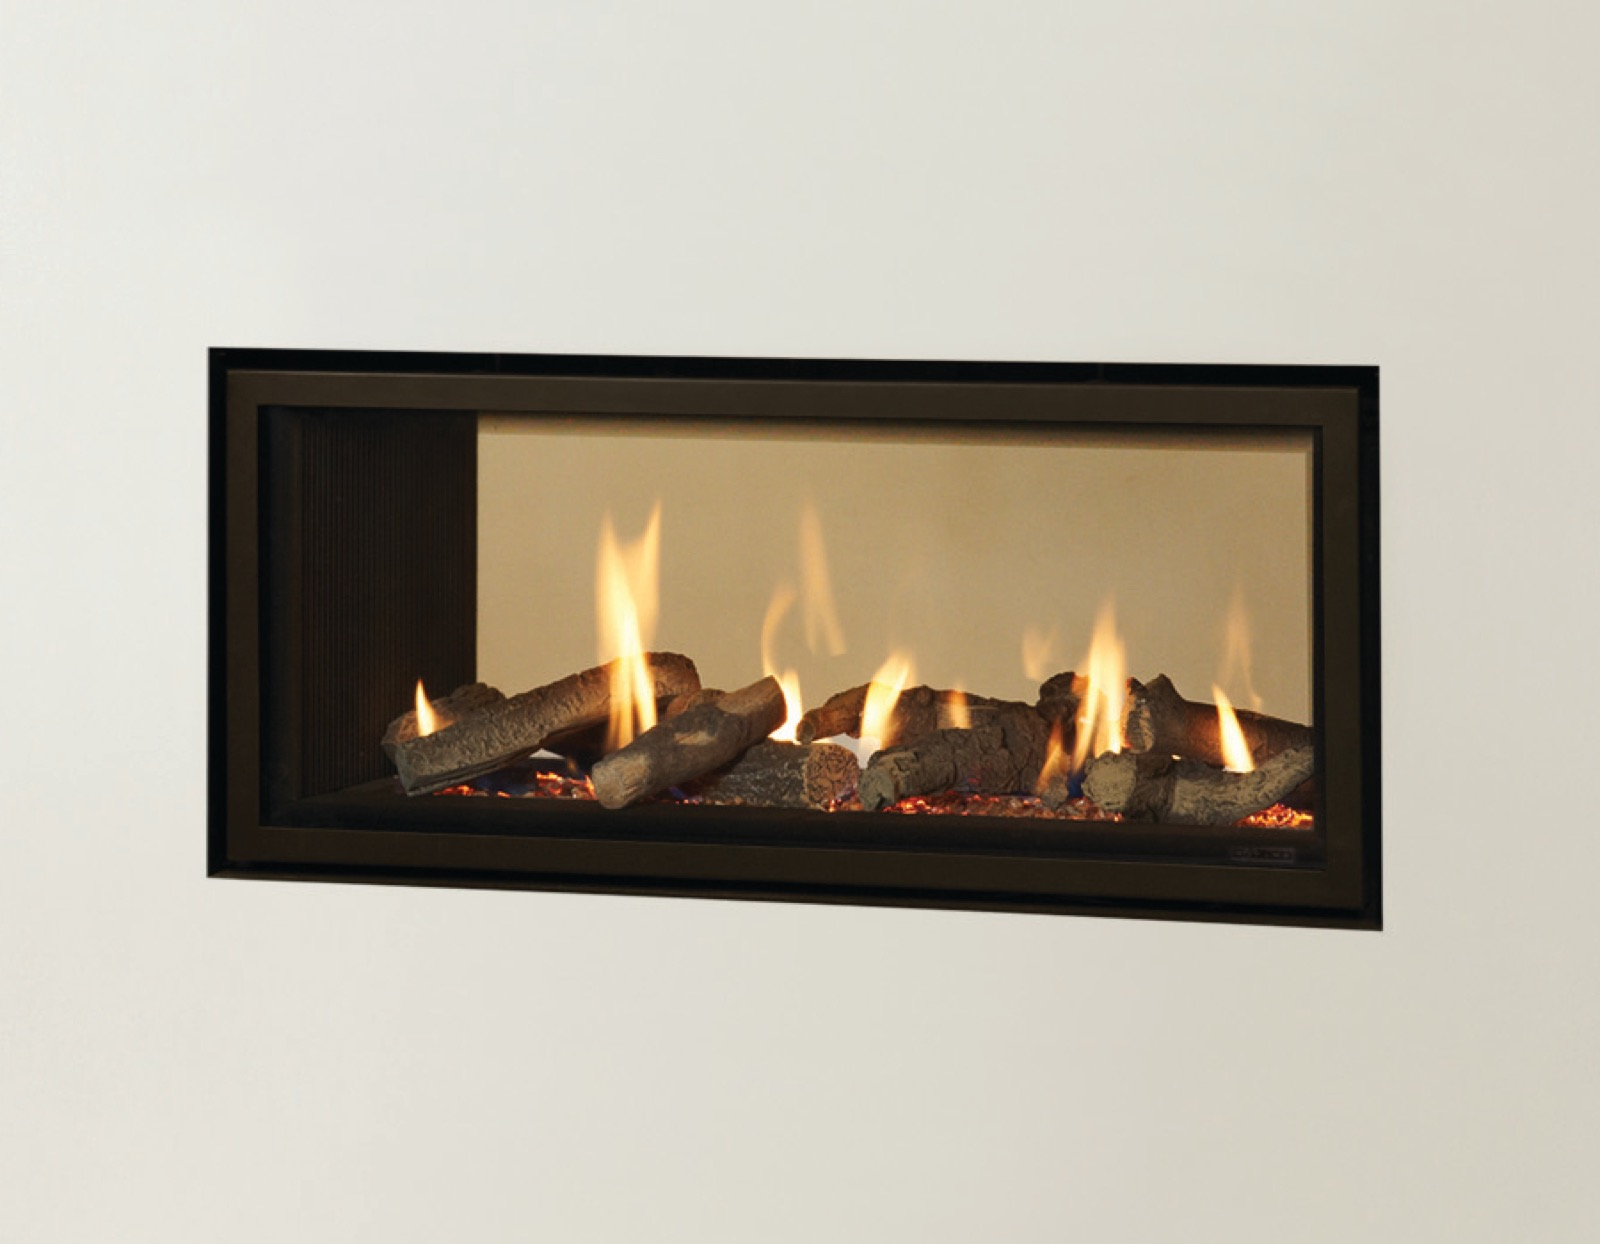 chimneys fireplace gas blog fireplaces using images wood stable design cosmetic products are of a burning with in associated sided heavy lot made foundations home masonry